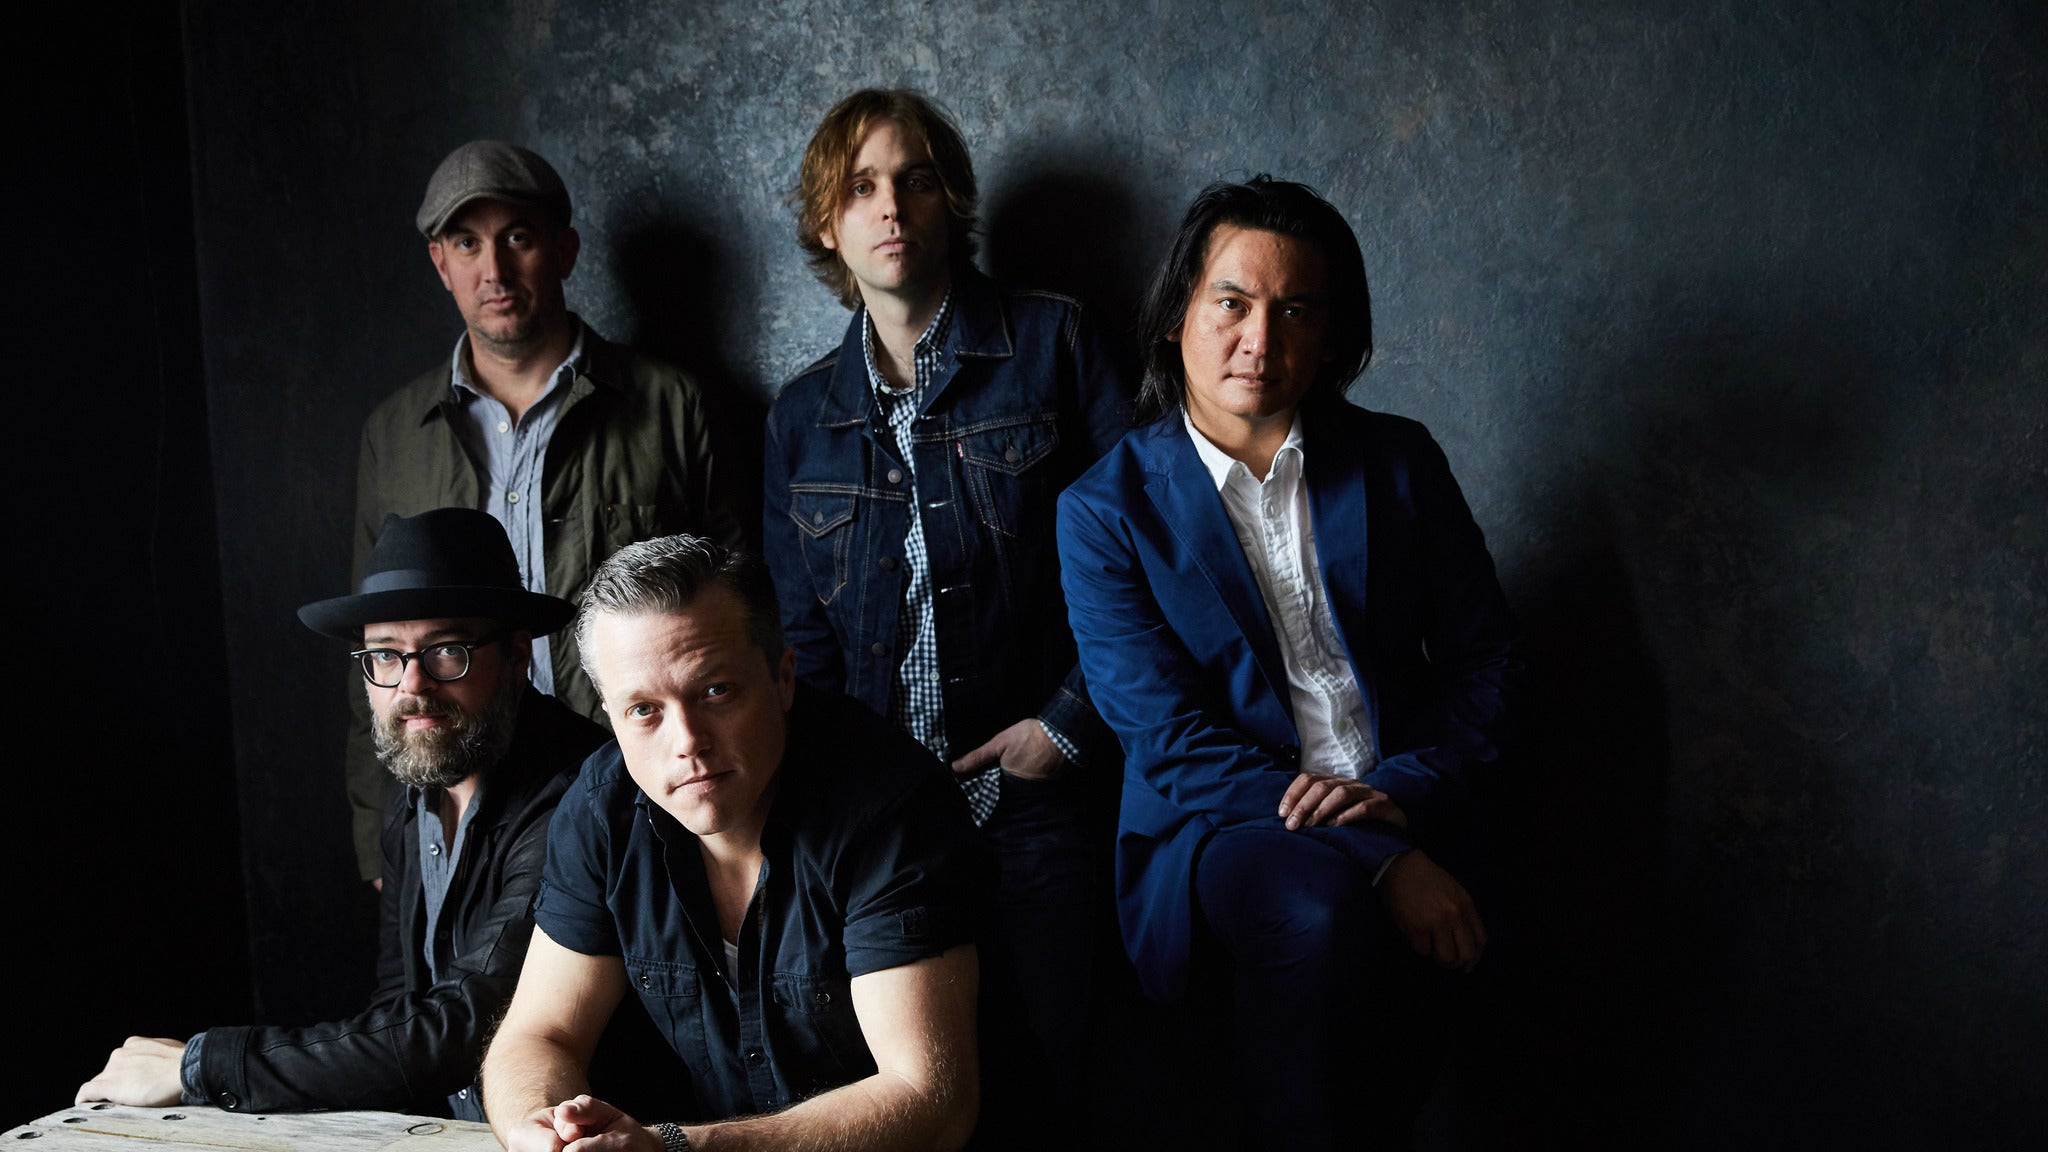 Jason Isbell and The 400 Unit + Old Crow Medicine Show